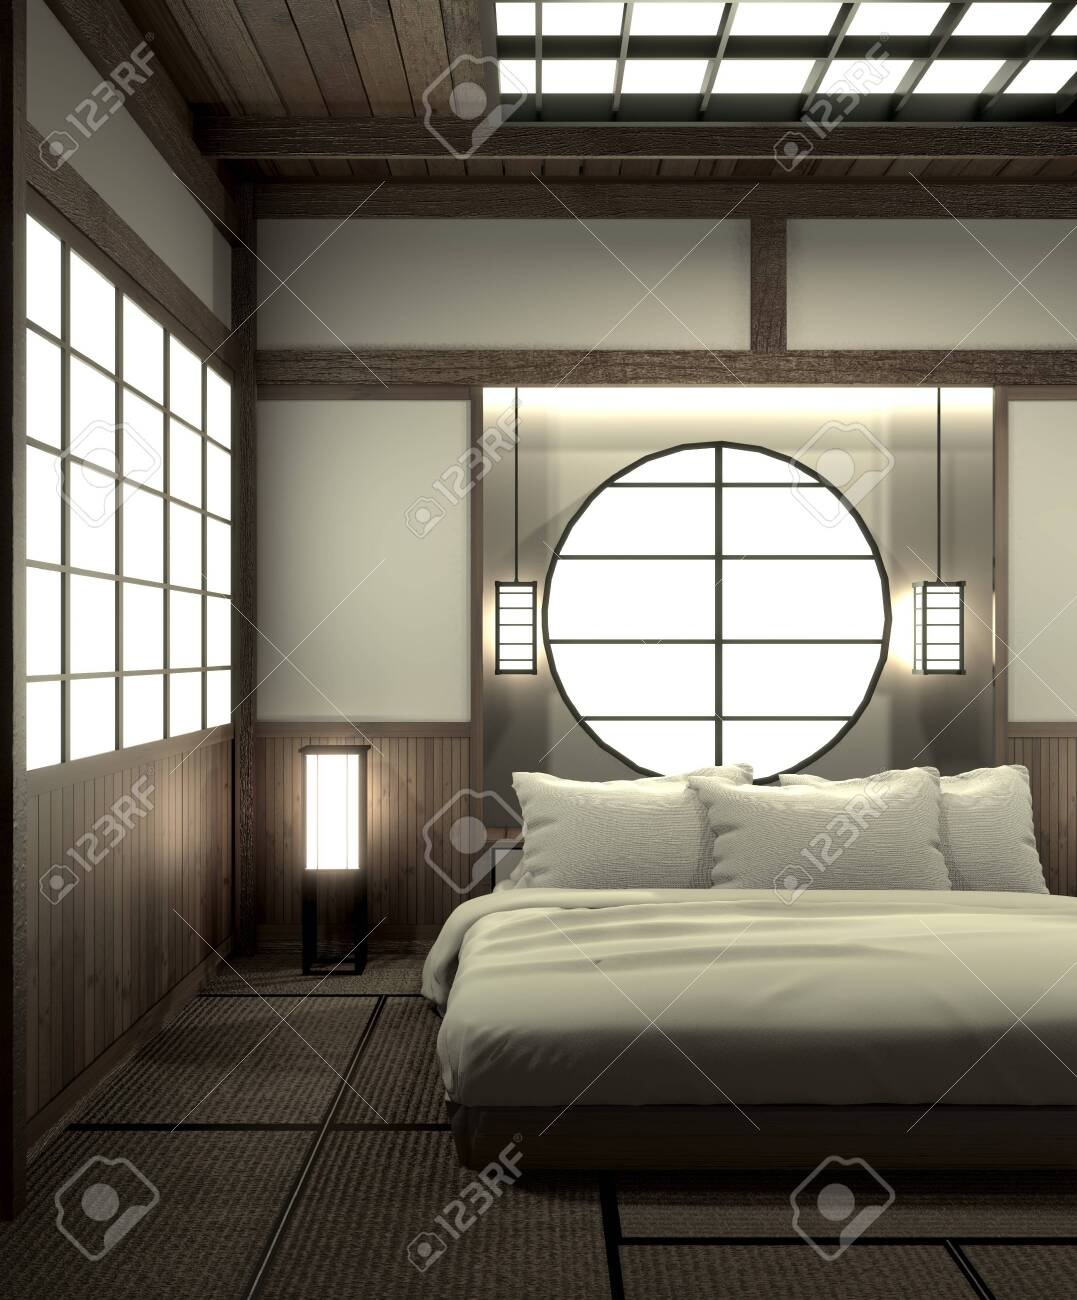 Bedroom Modern Zen Interior Design With Decoration Japanese Style 3d Stock Photo Picture And Royalty Free Image Image 127103871